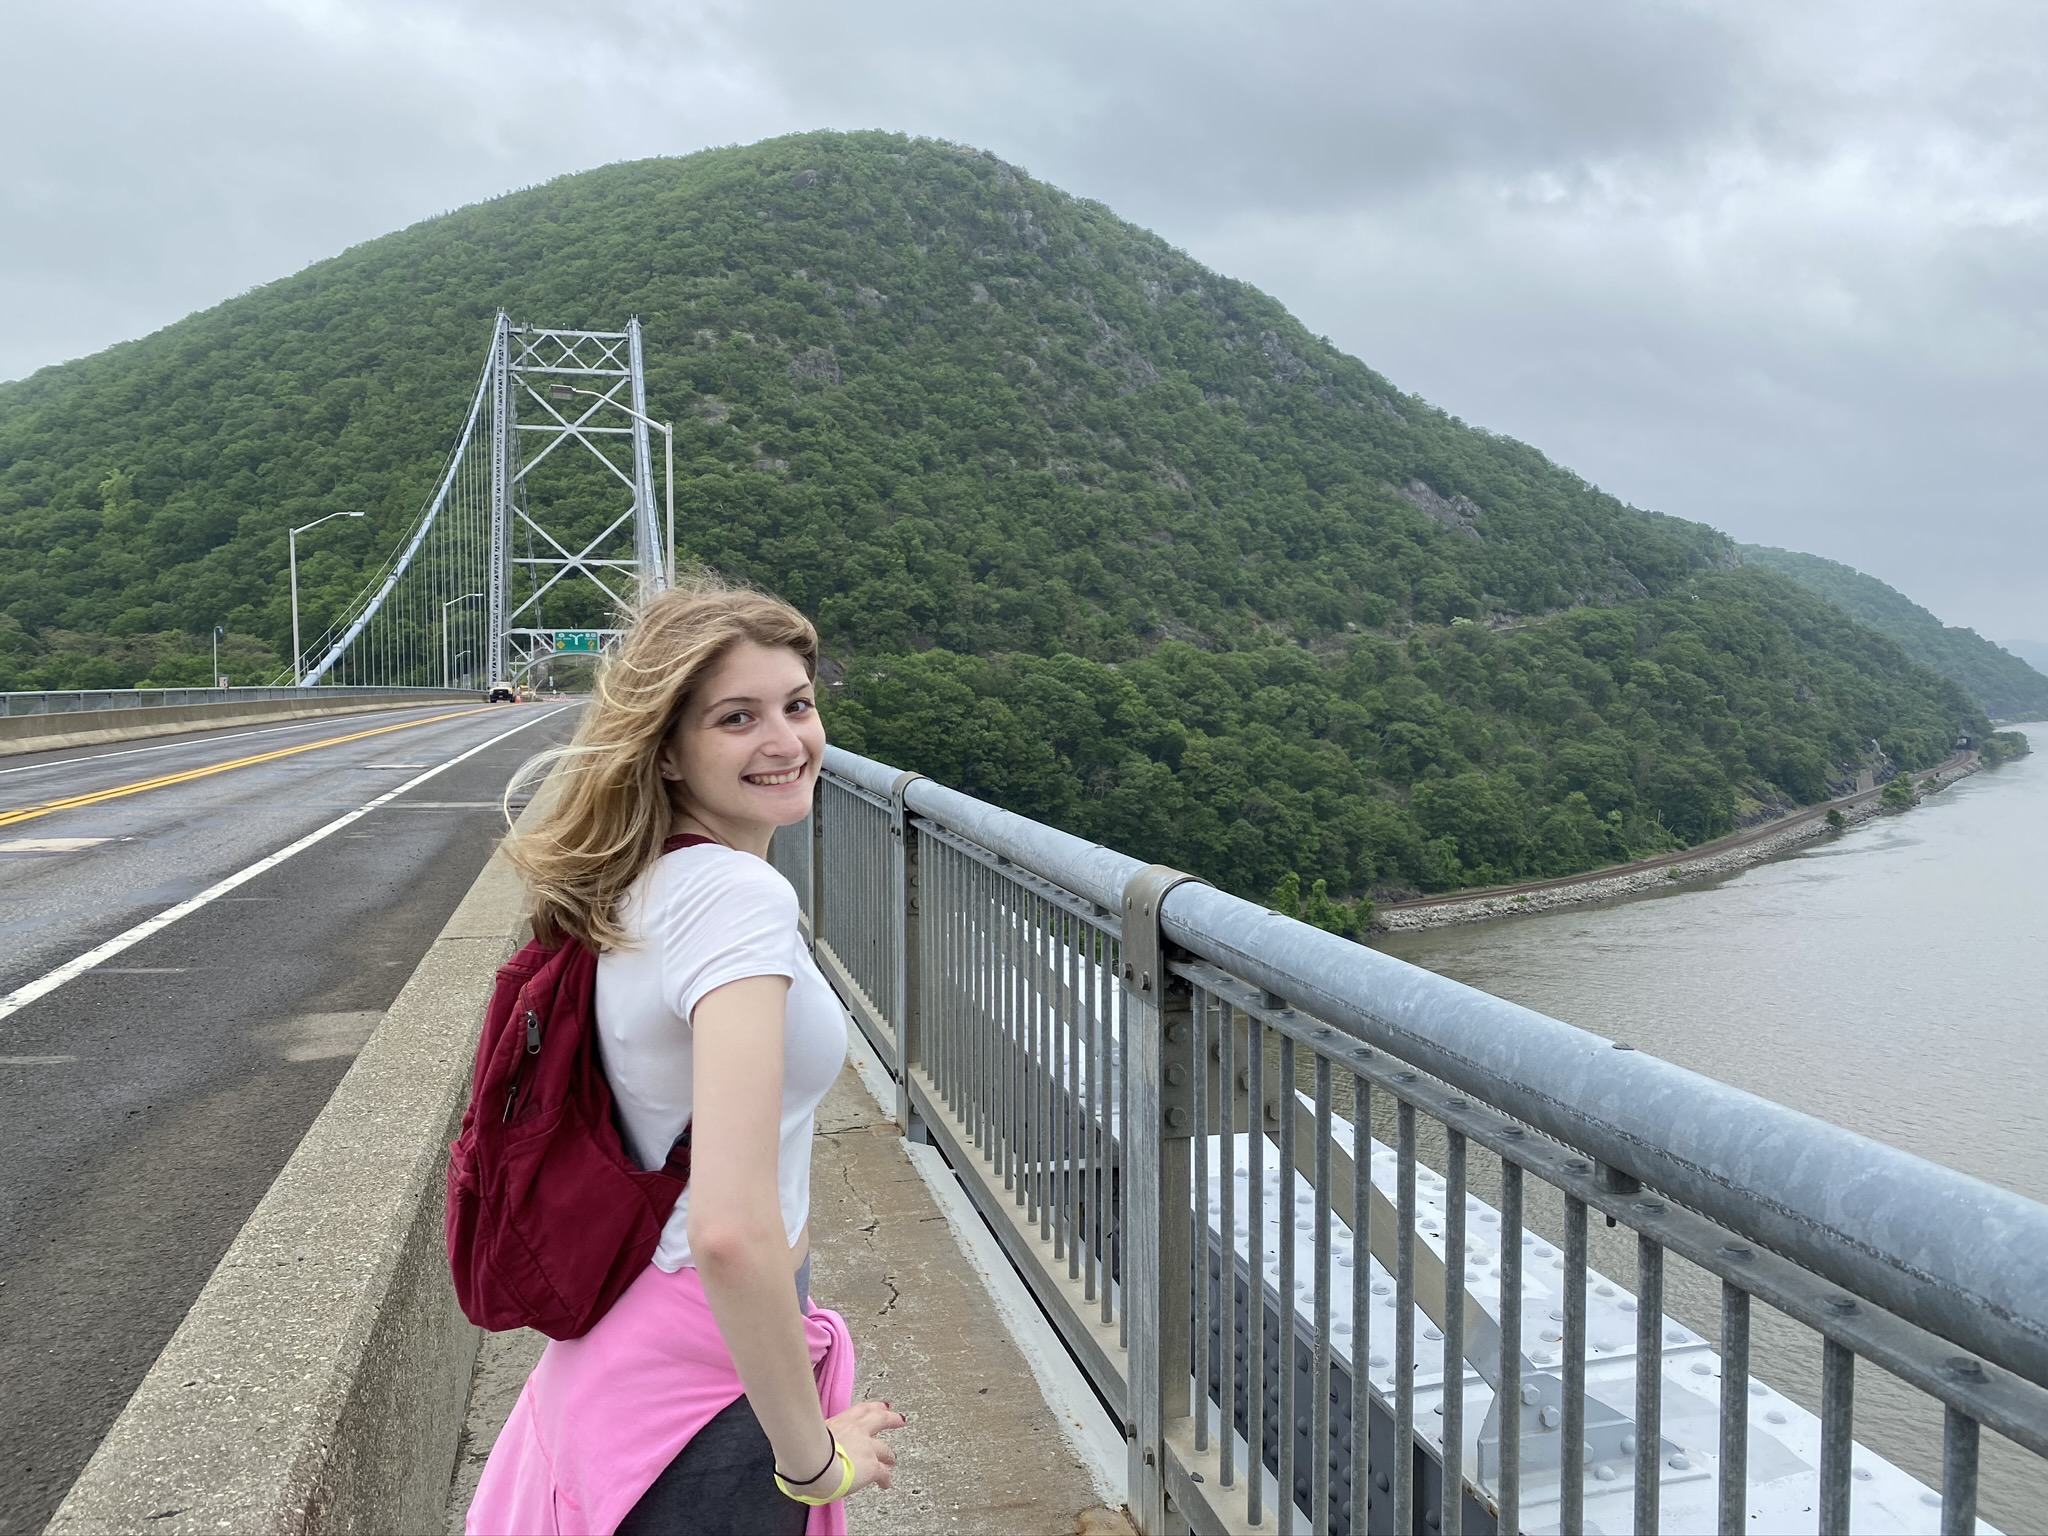 me on the bridge in front of mountains